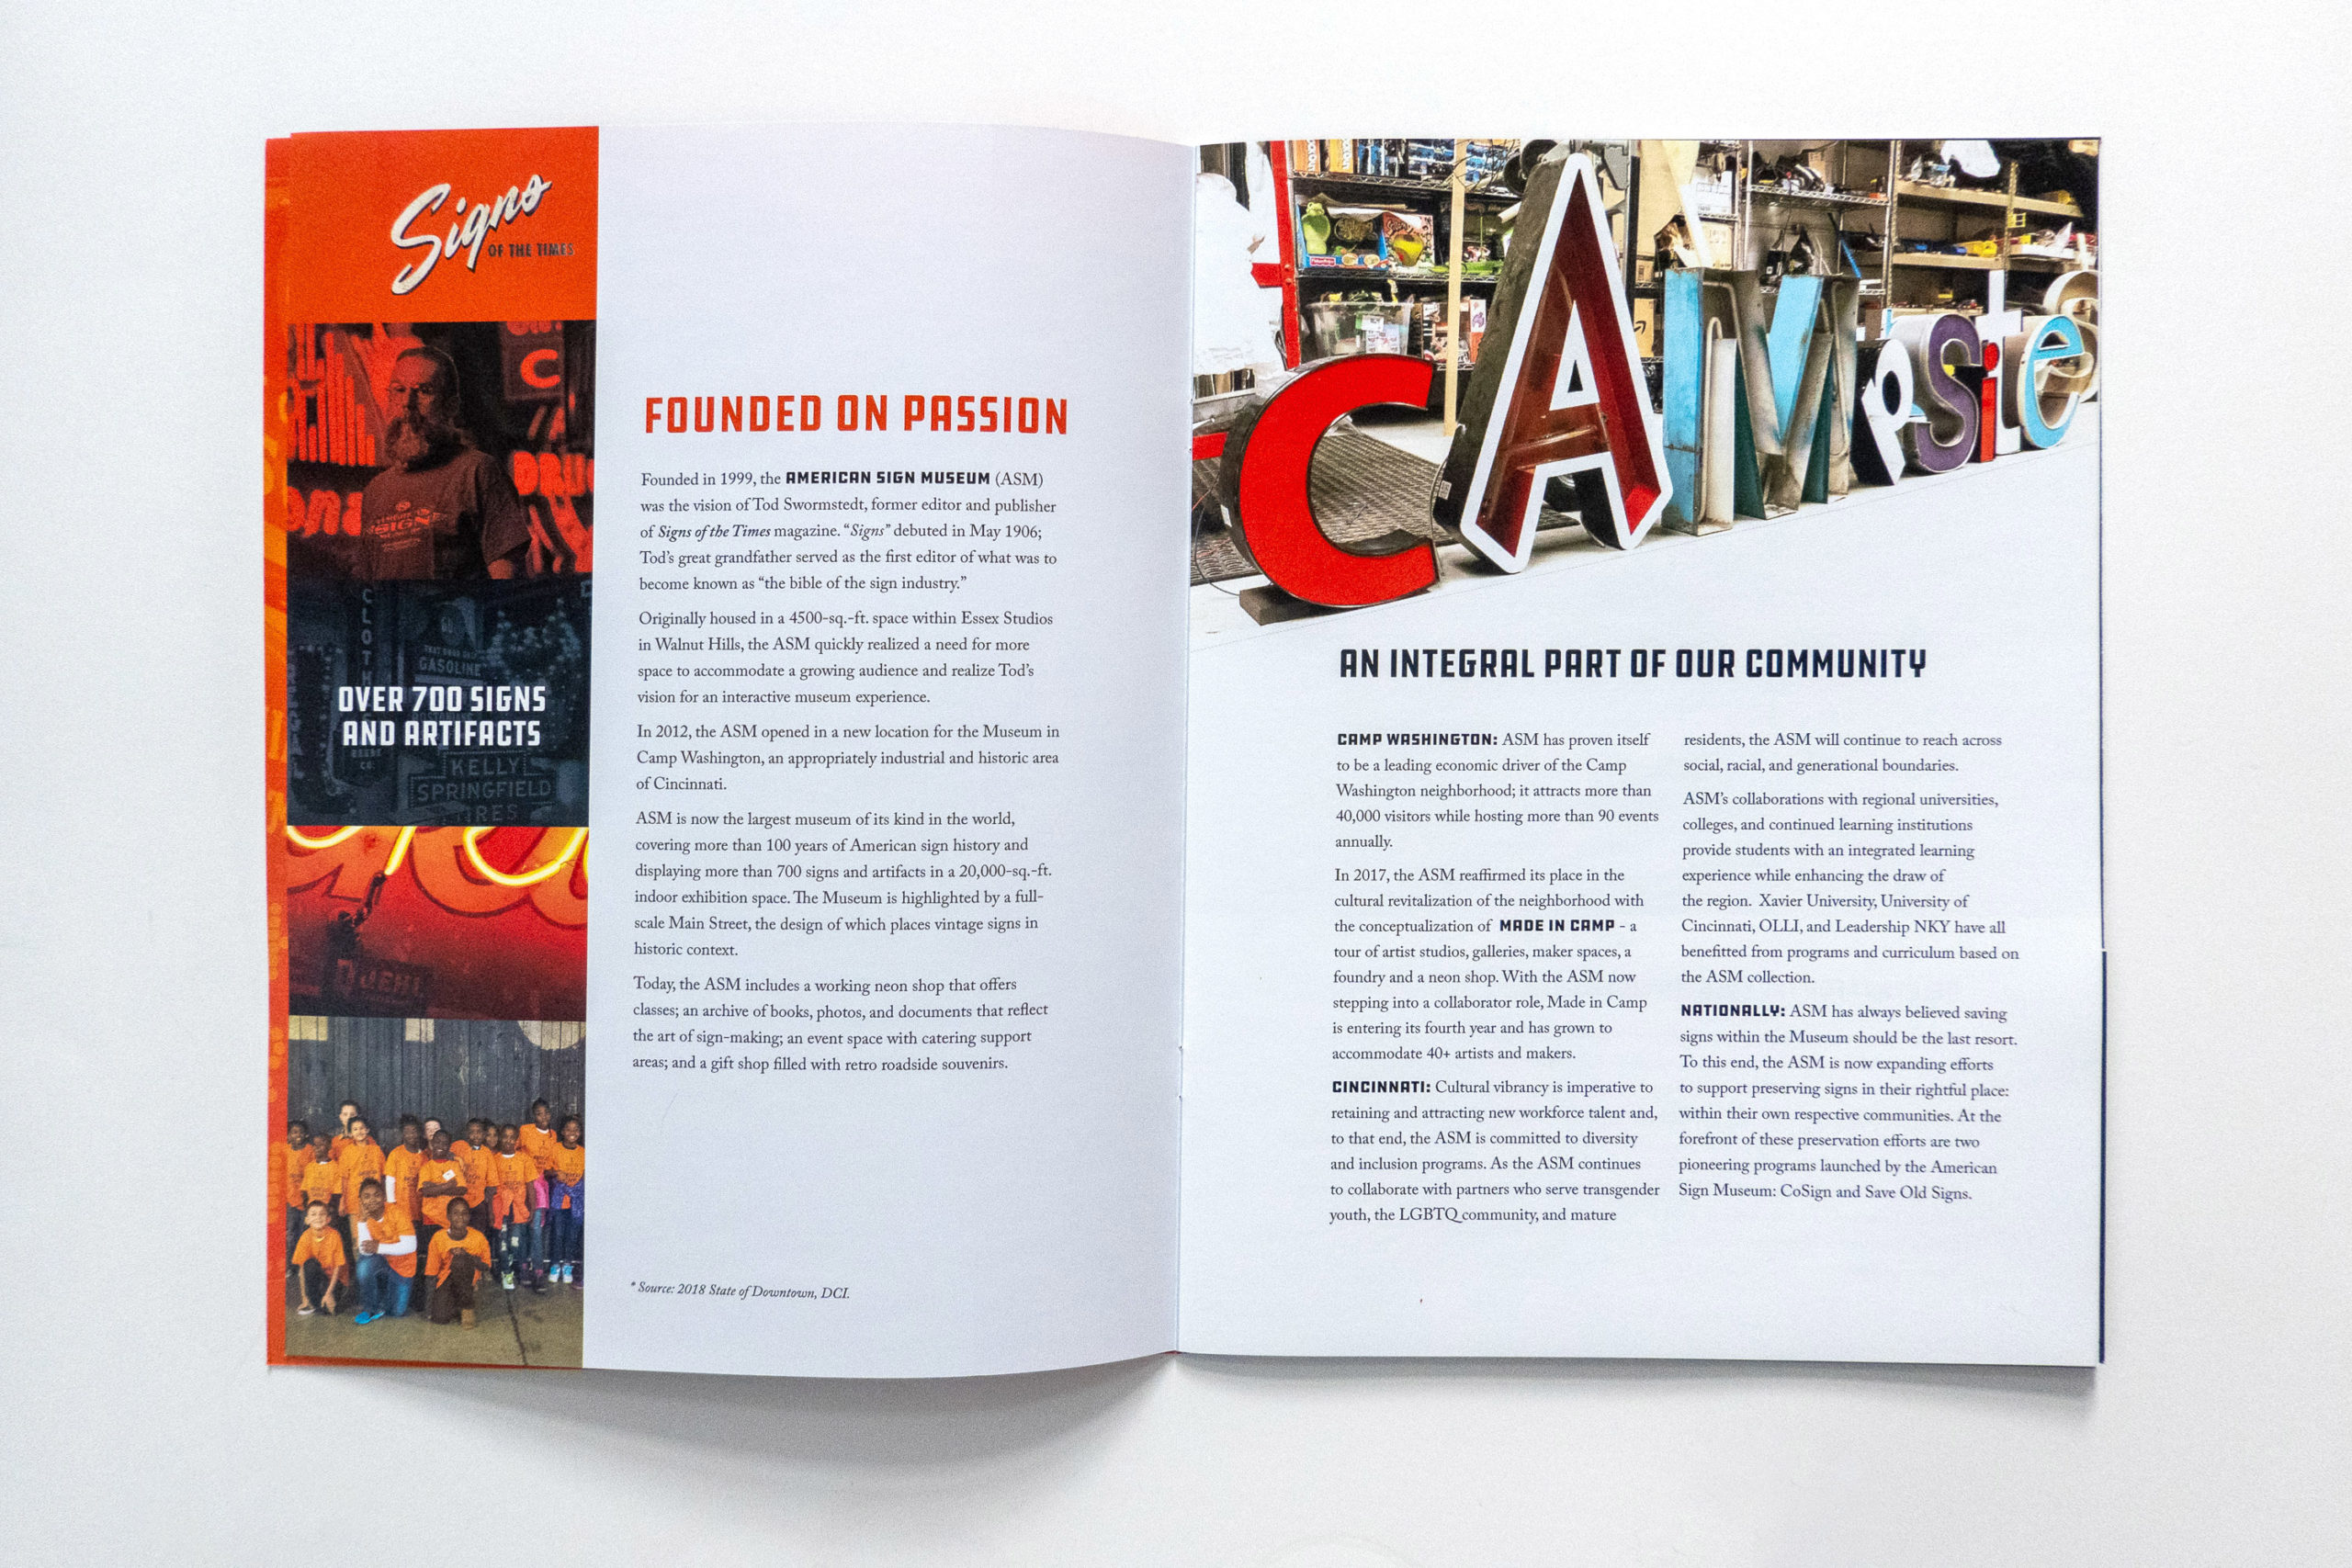 Interior spread of prospectus with introduction